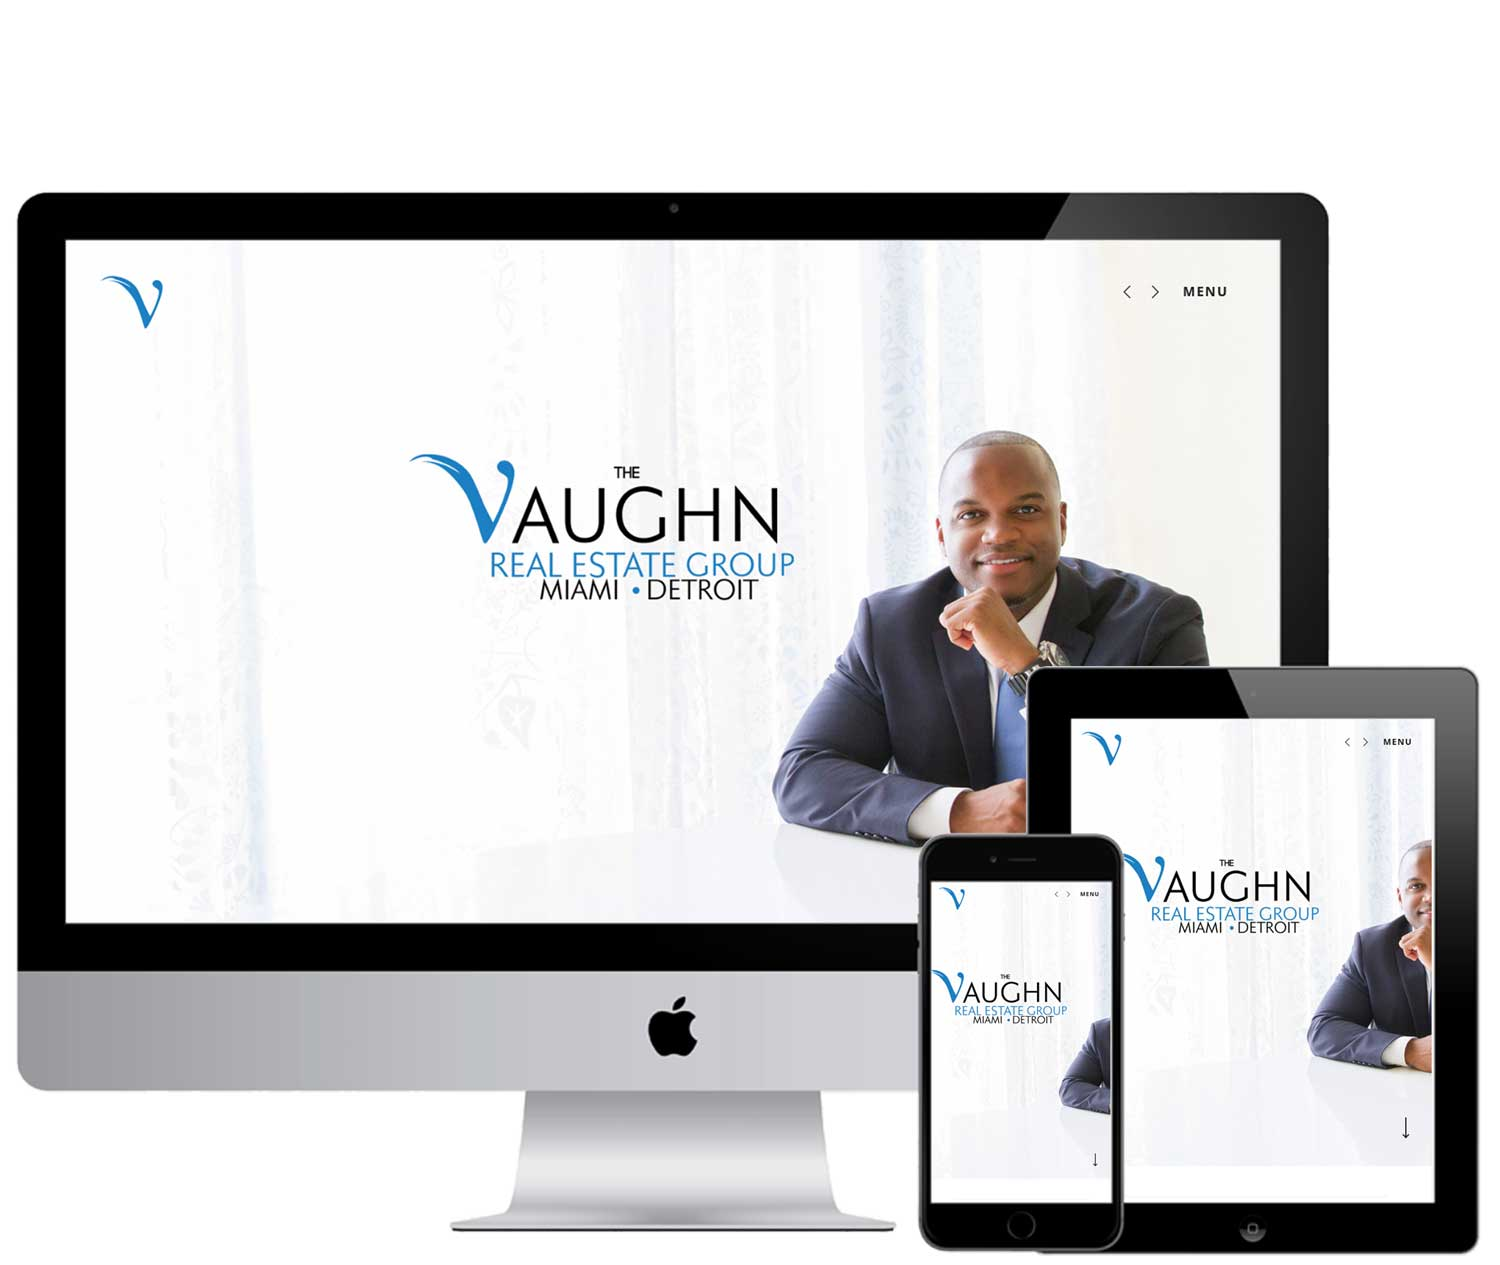 The Vaughn Real Estate Website design